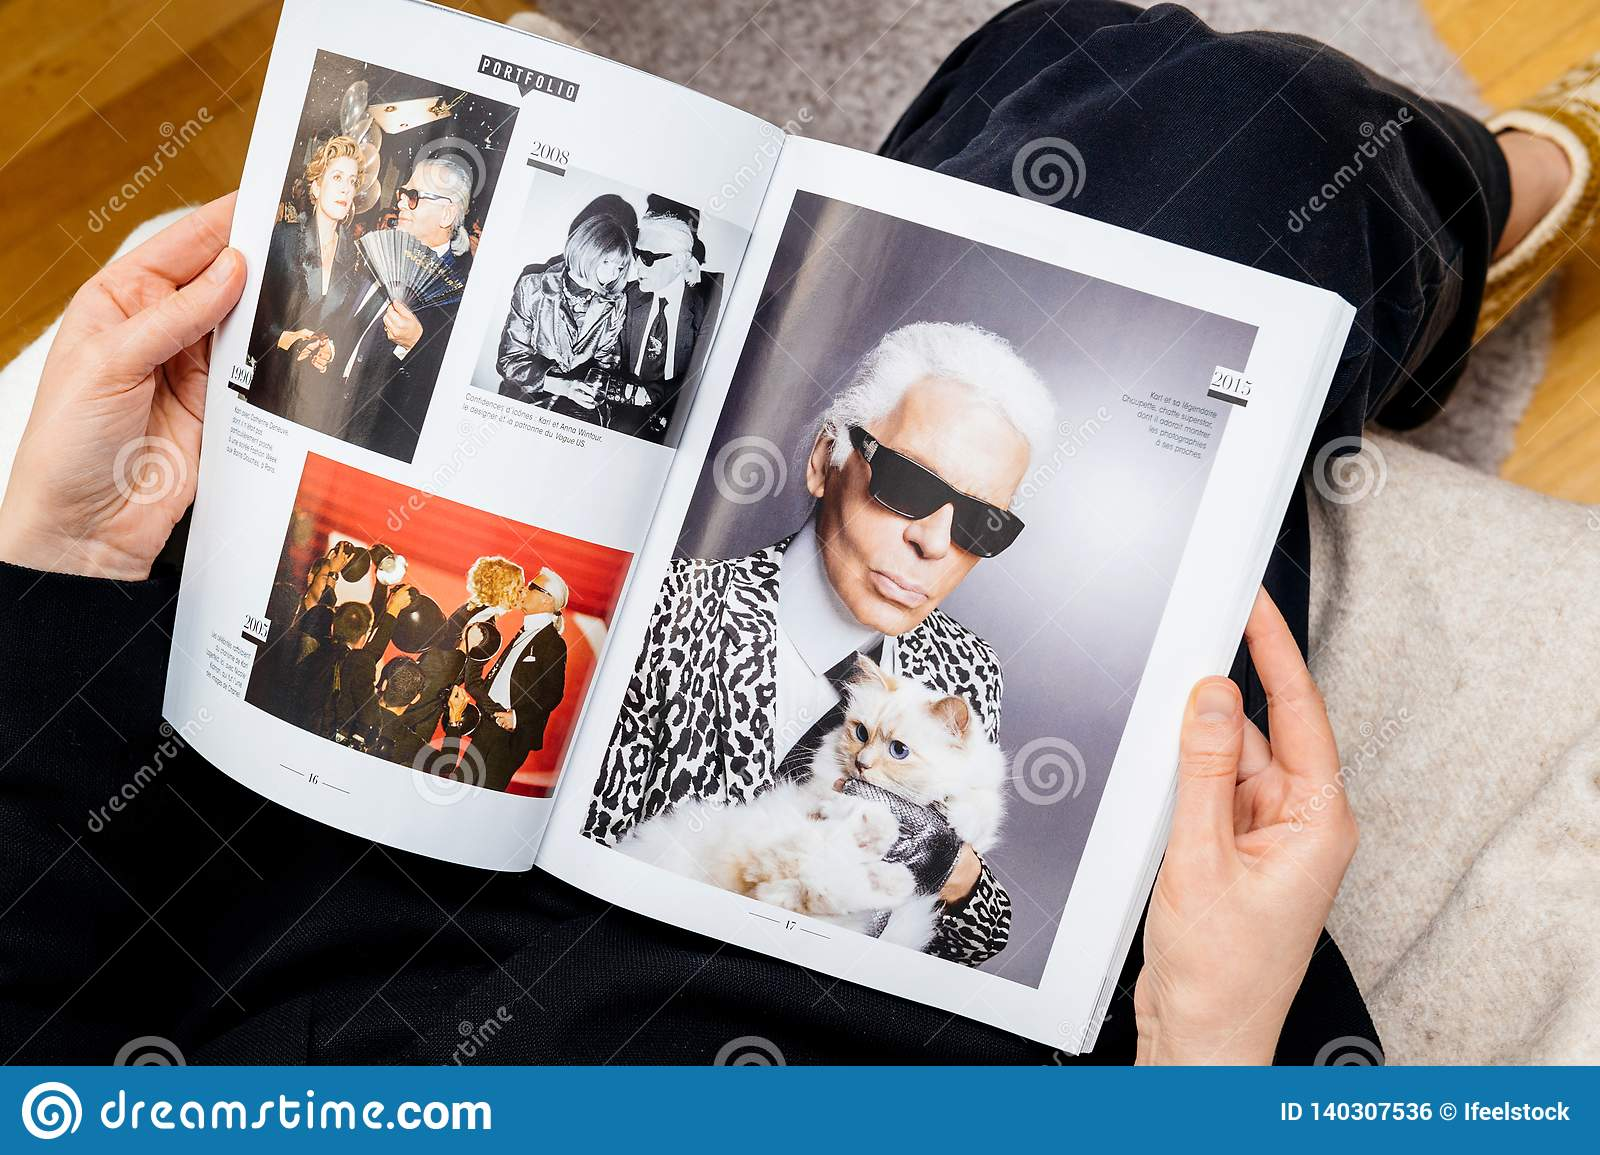 Woman Reading Newsapepr About Karl Lagerfeld Death Photo With